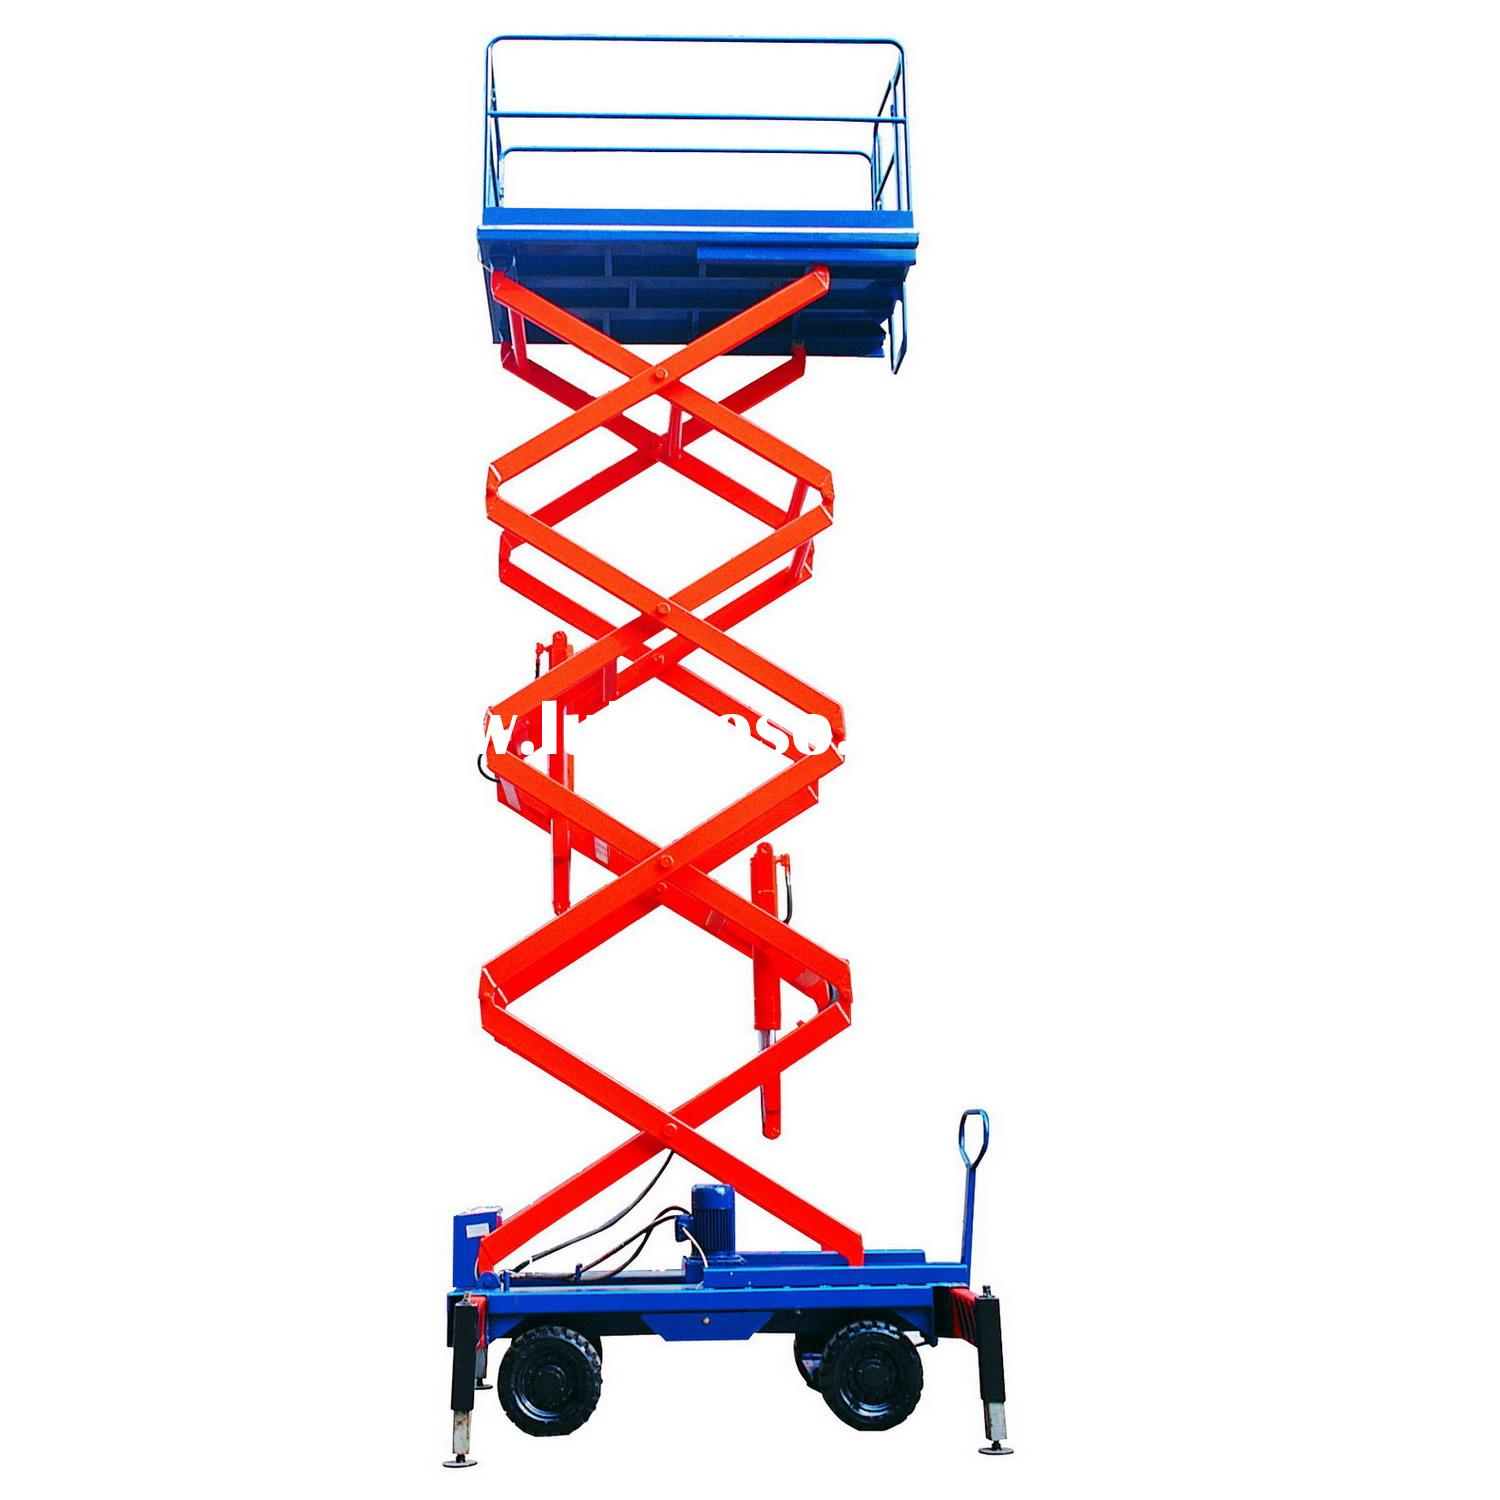 scissor lift genie scissor lift manual rh scissorliftseiroto blogspot com Genie Lift Parts Manual Genie Lift Manuals